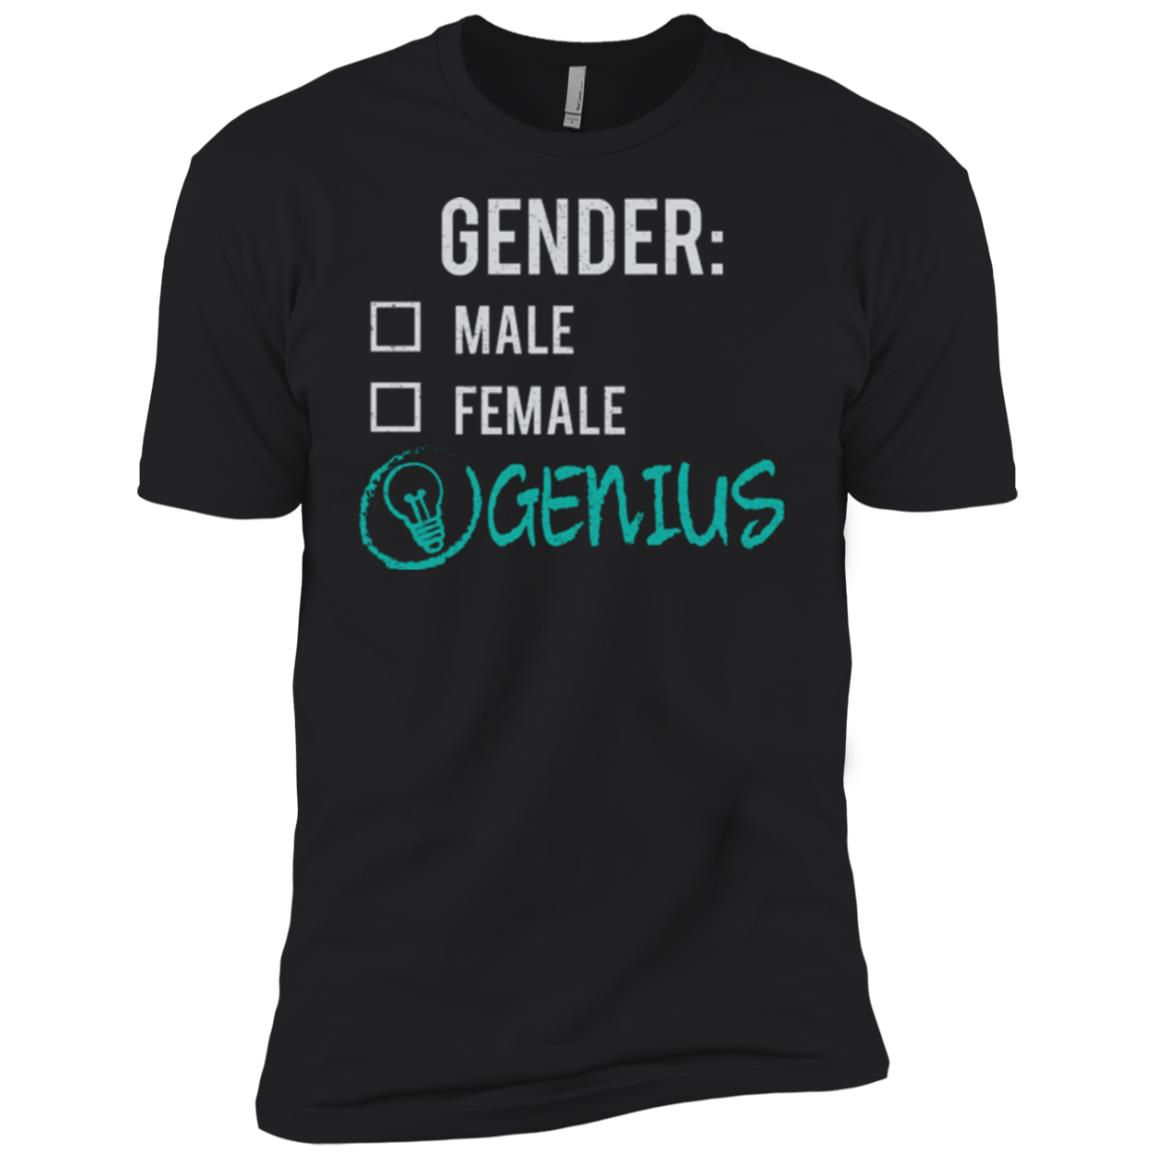 Male Female Genius Gender Nonbinary Trans Men Short Sleeve T-Shirt